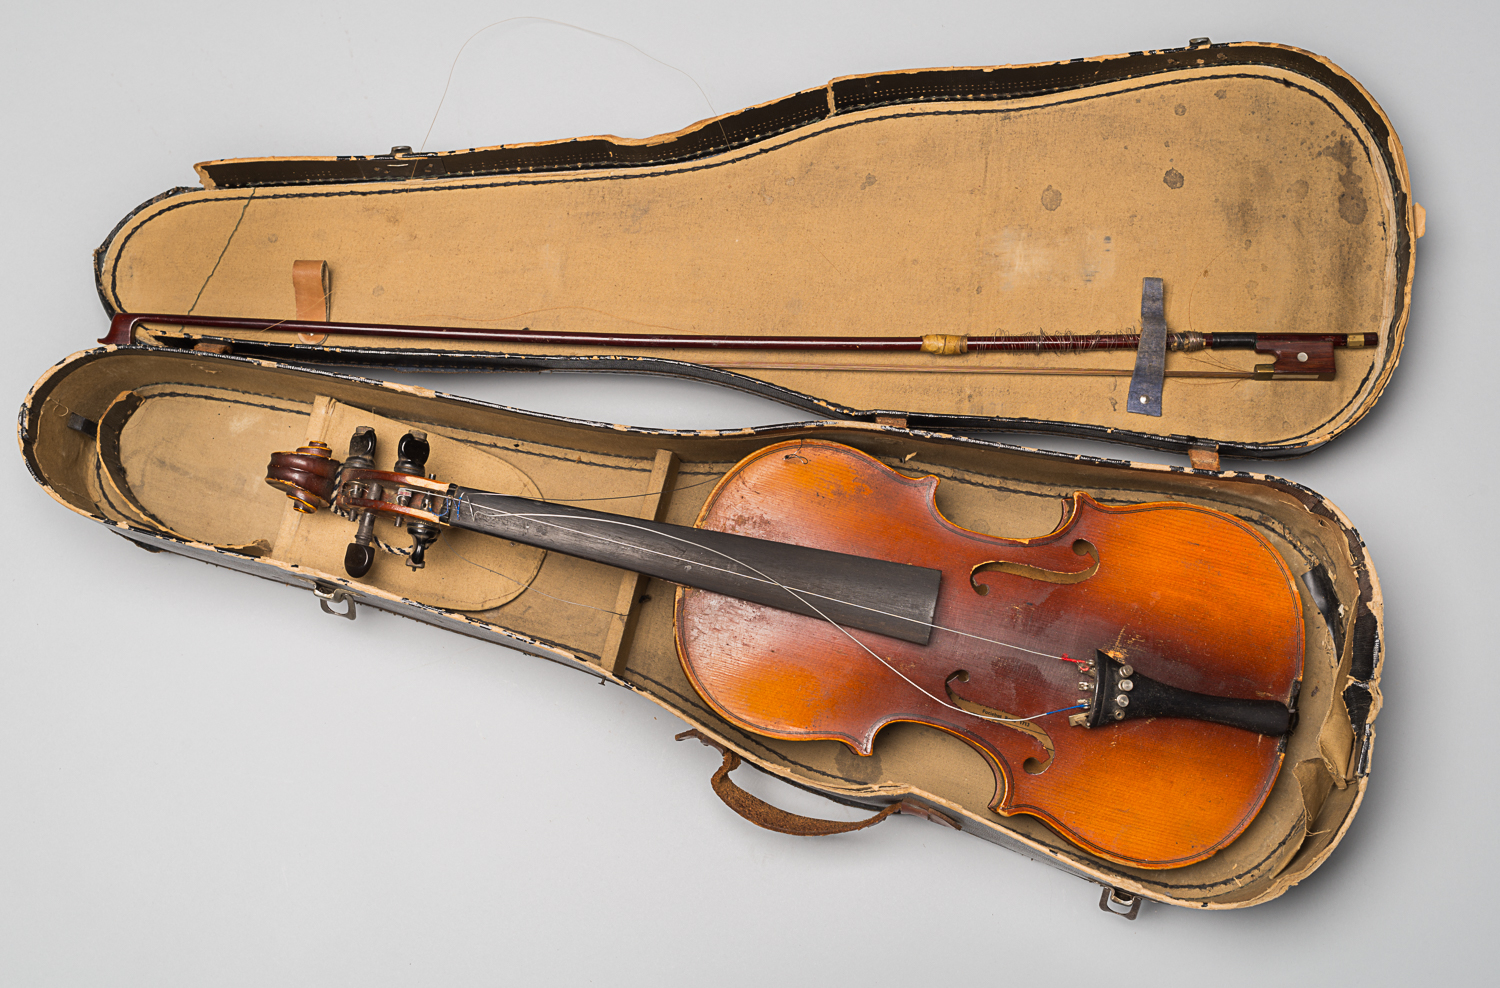 This violin is a copy of a Stradivarius and was kept in its case. It belonged to Alexander Izso, who received it as a child in the 1930s.